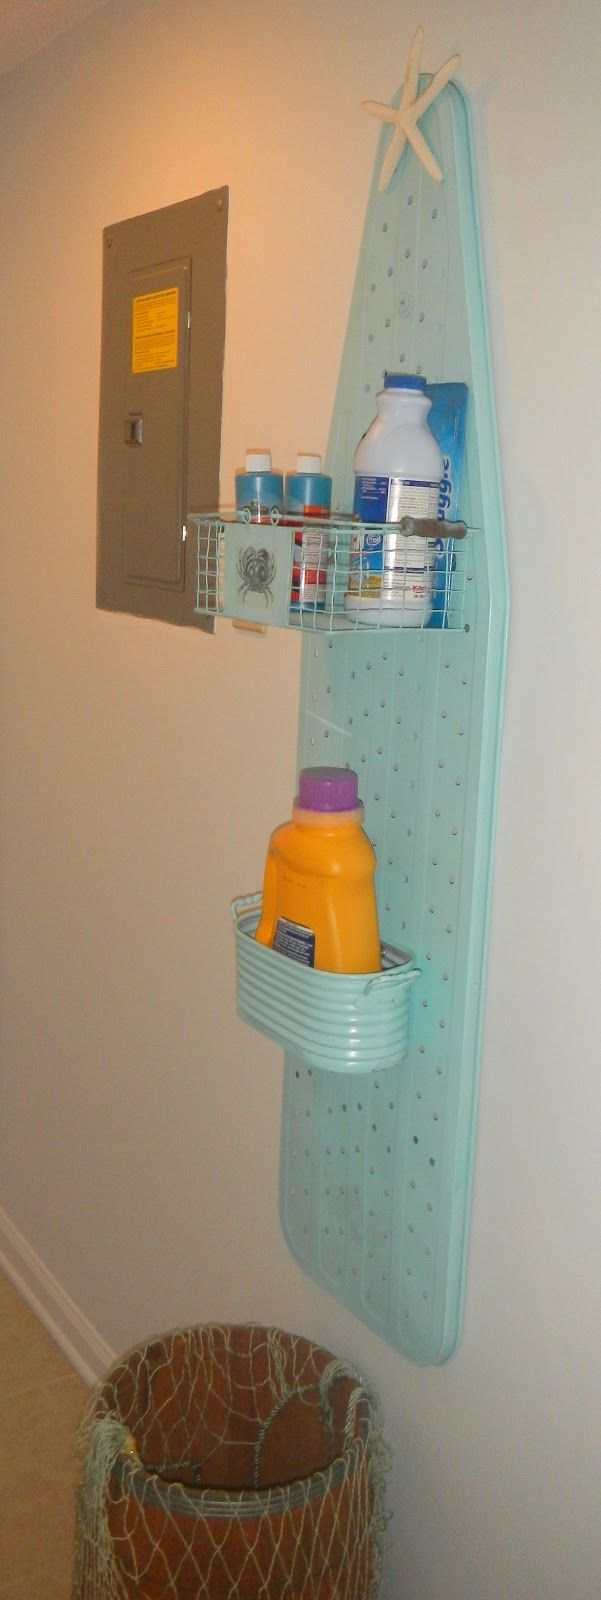 Laundry-Room Organizer